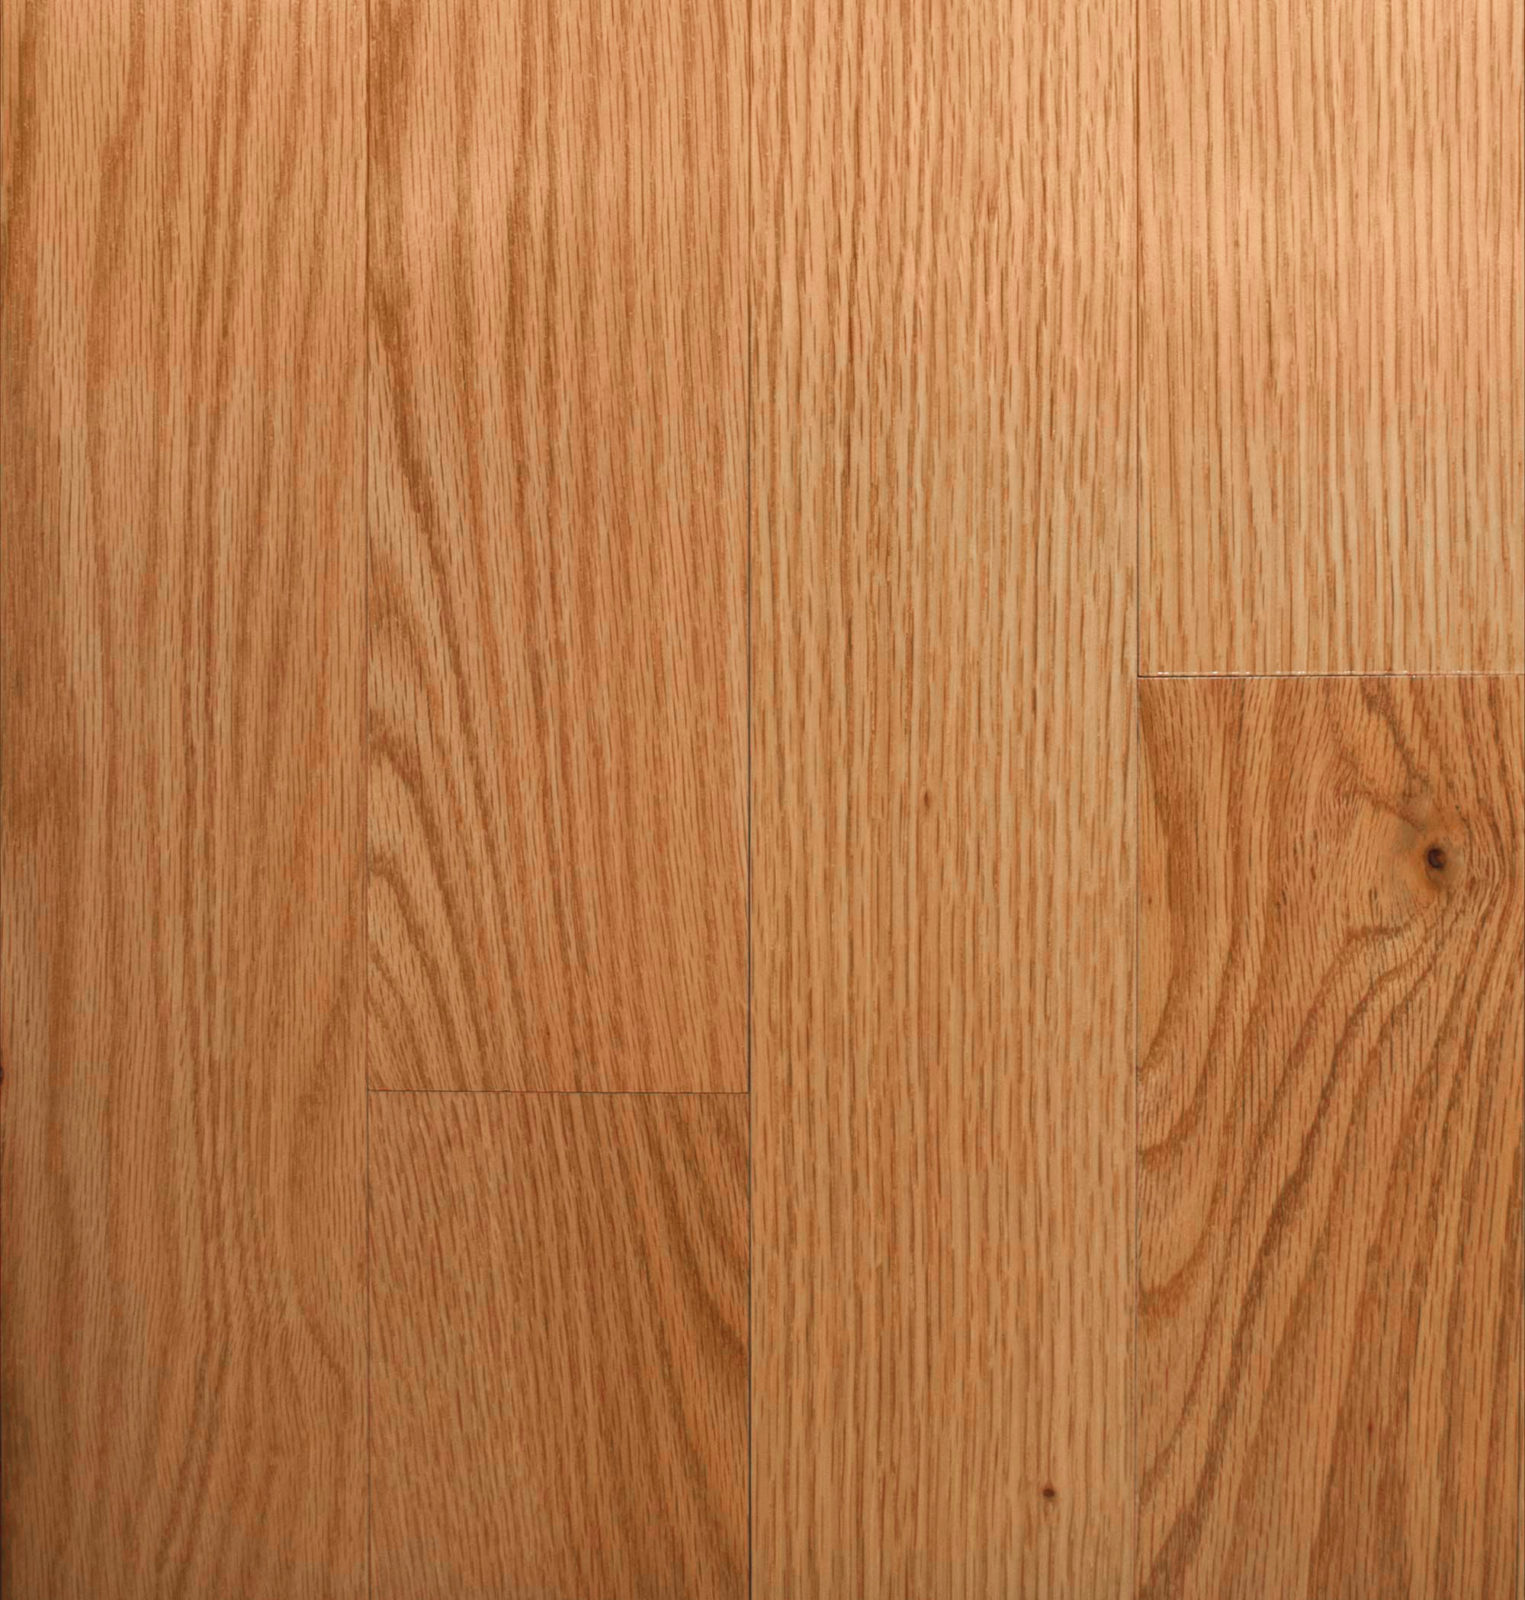 Red oak hardwood flooring for sale great unfinished red for Hardwood flooring sale